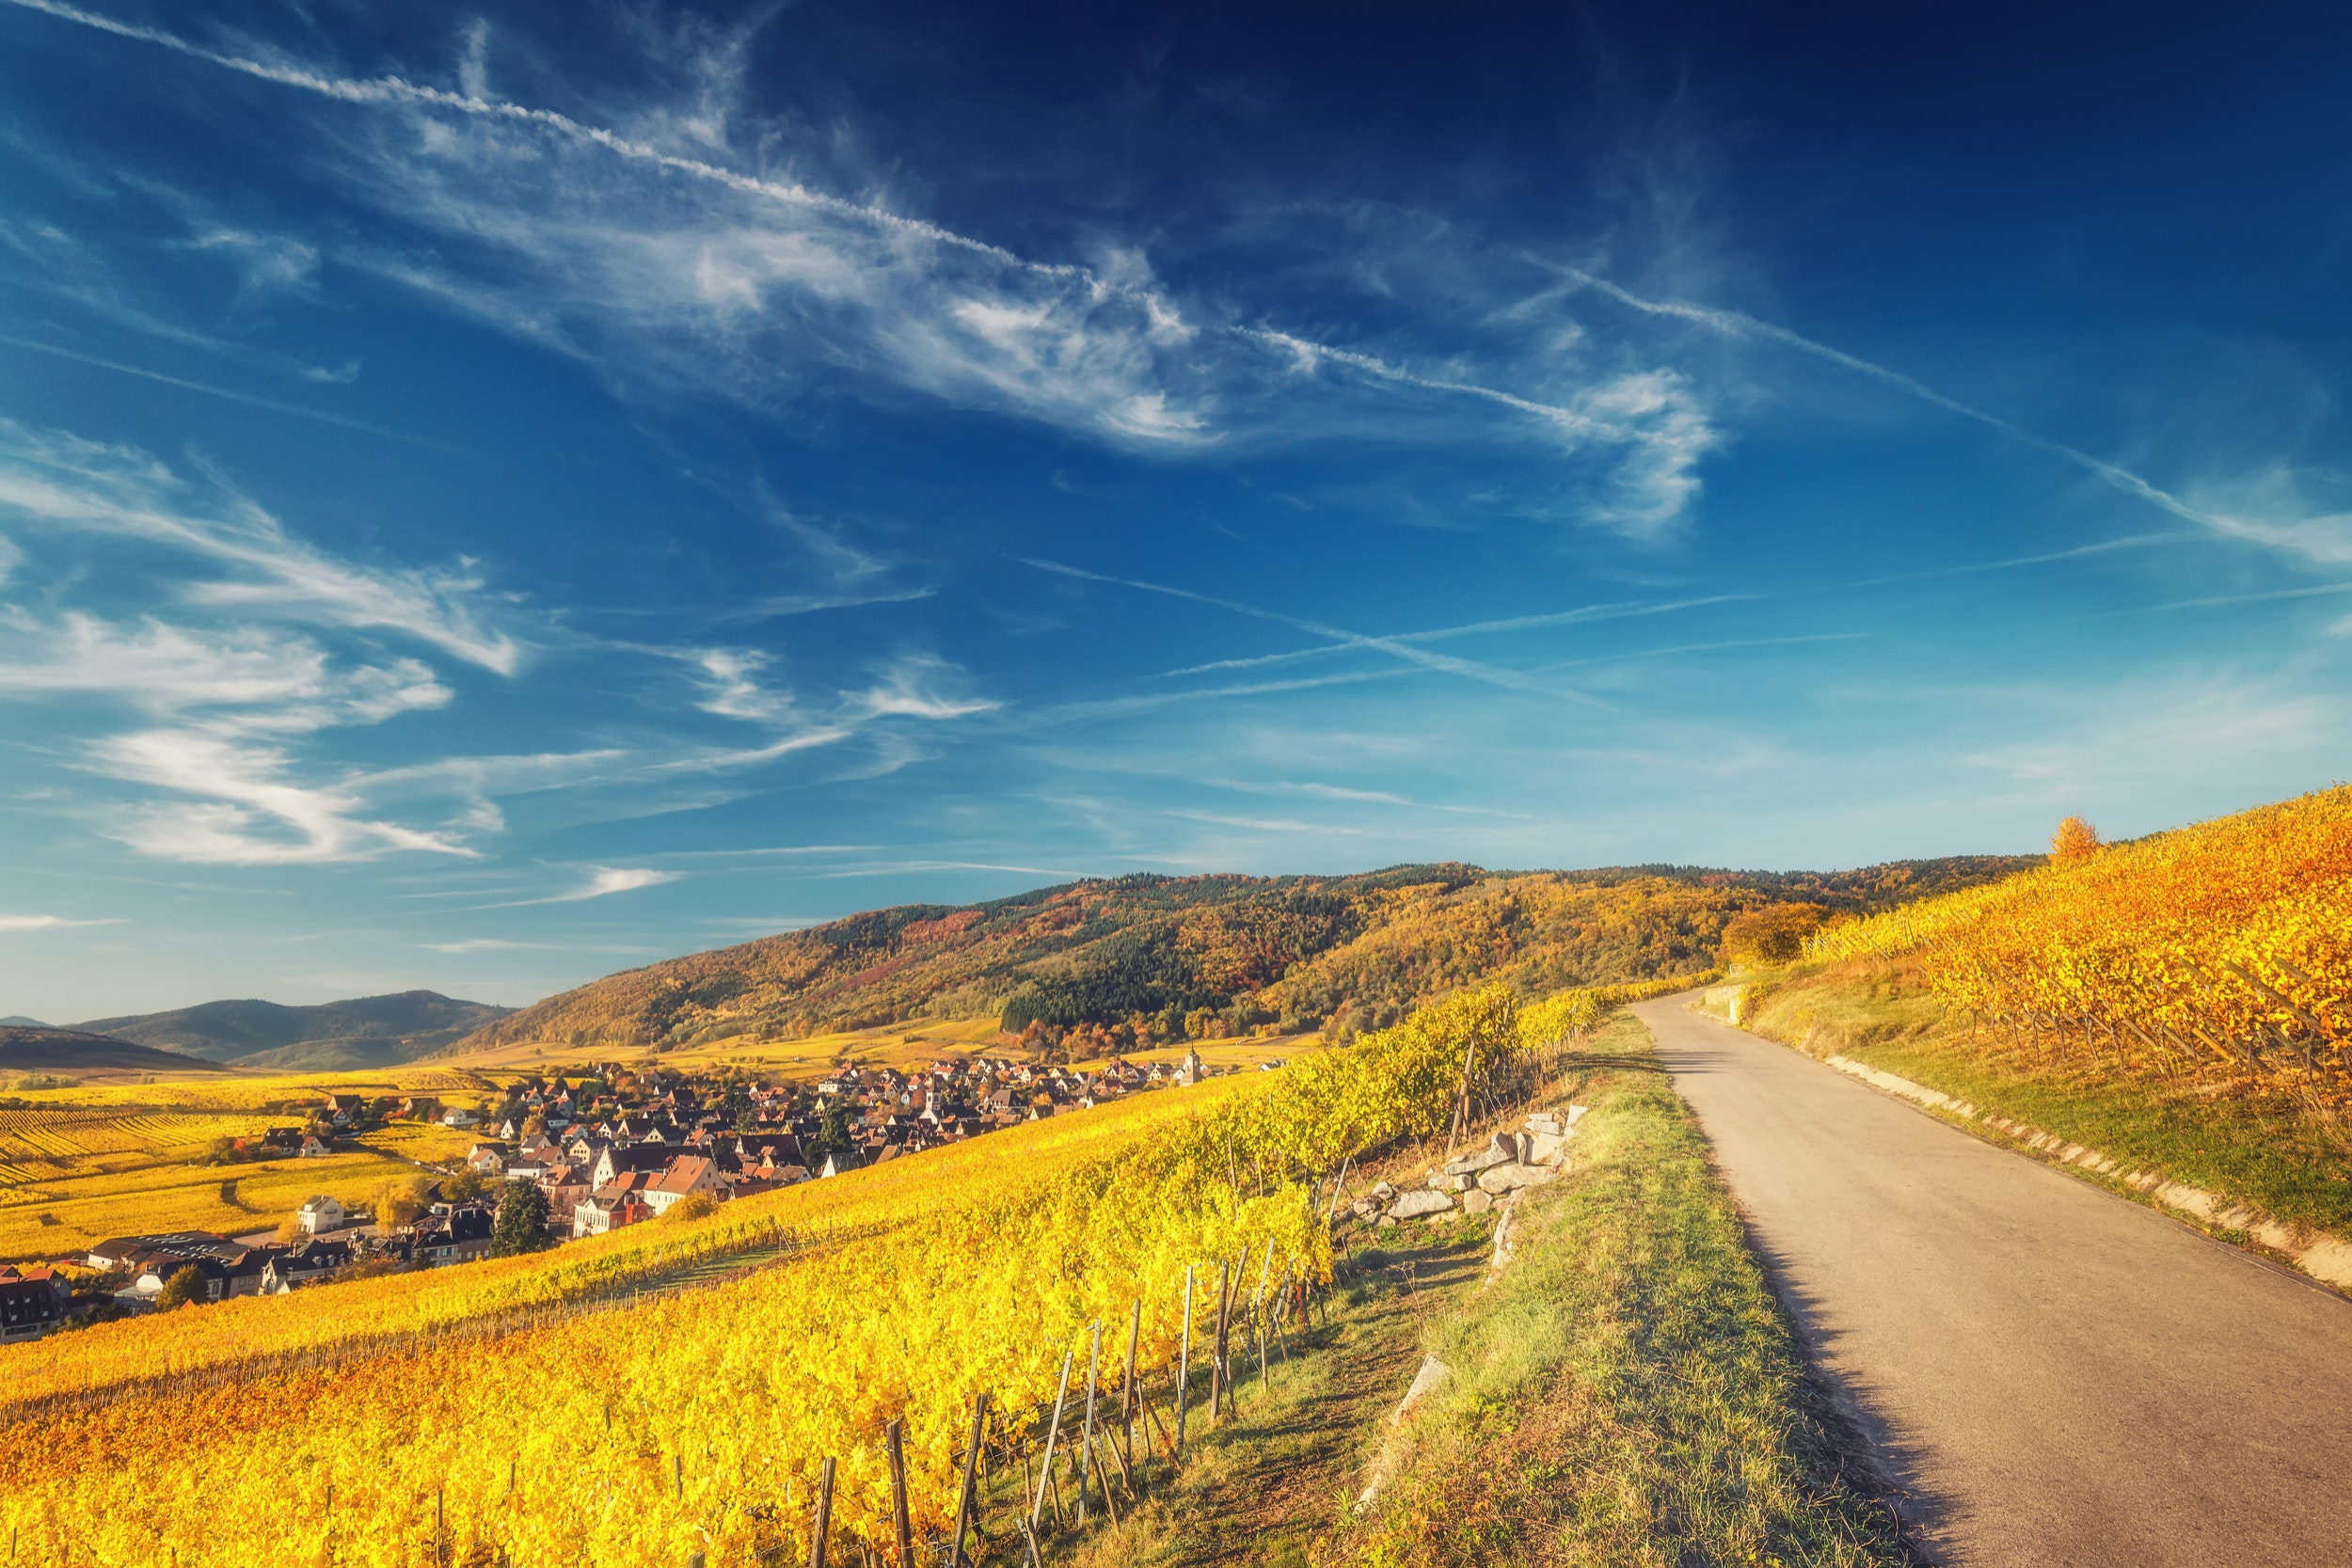 The Alsace region is home to scenic towns and great whites.